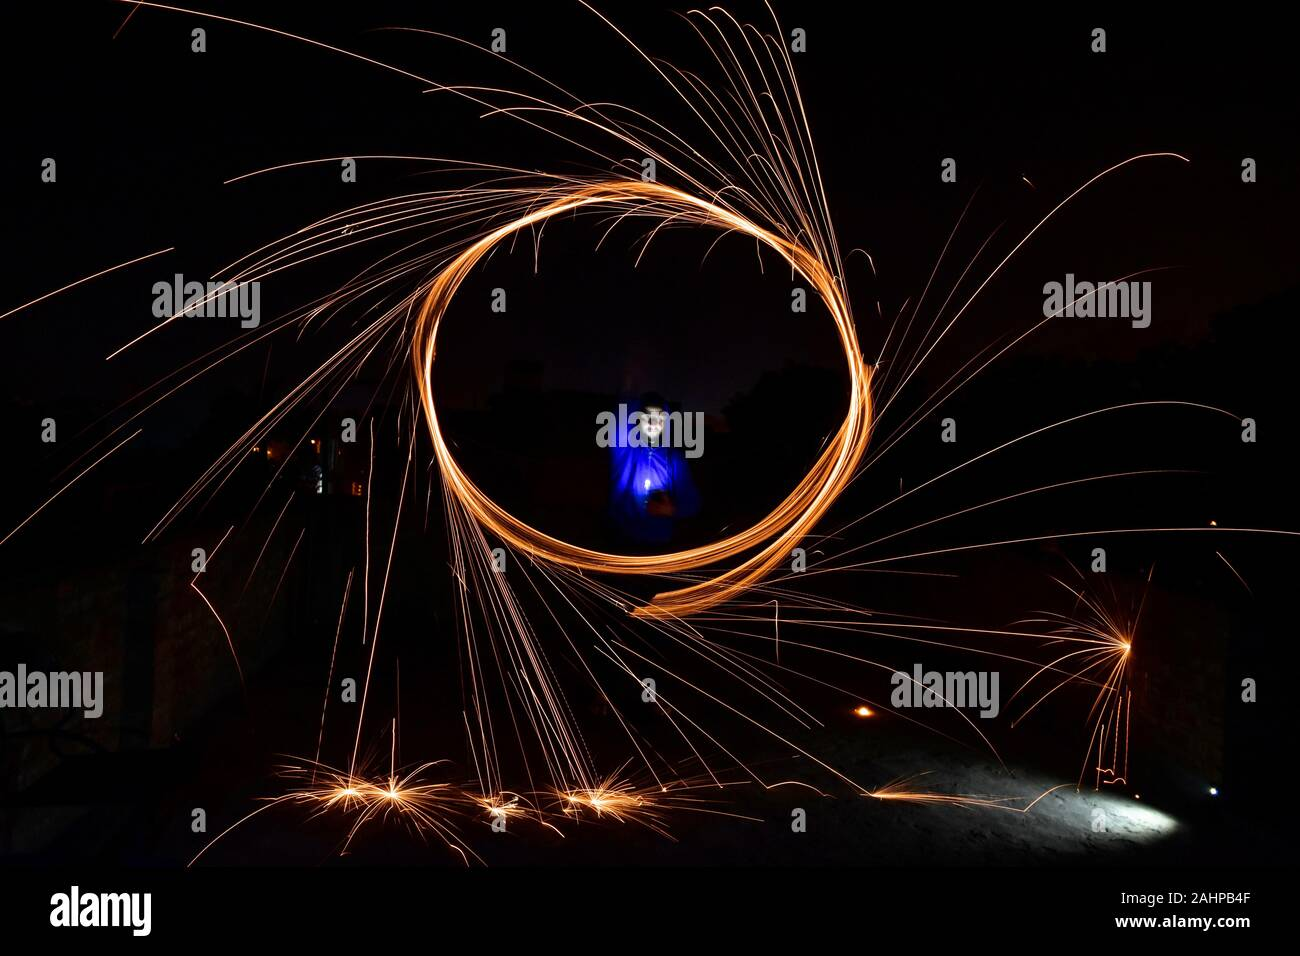 January 1, 2020, Rajpura, India: A boy spins a burning steel wool with a sling performing light painting during the New Year celebrations in Rajpura town. (Credit Image: © Saqib Majeed/SOPA Images via ZUMA Wire) Stock Photo